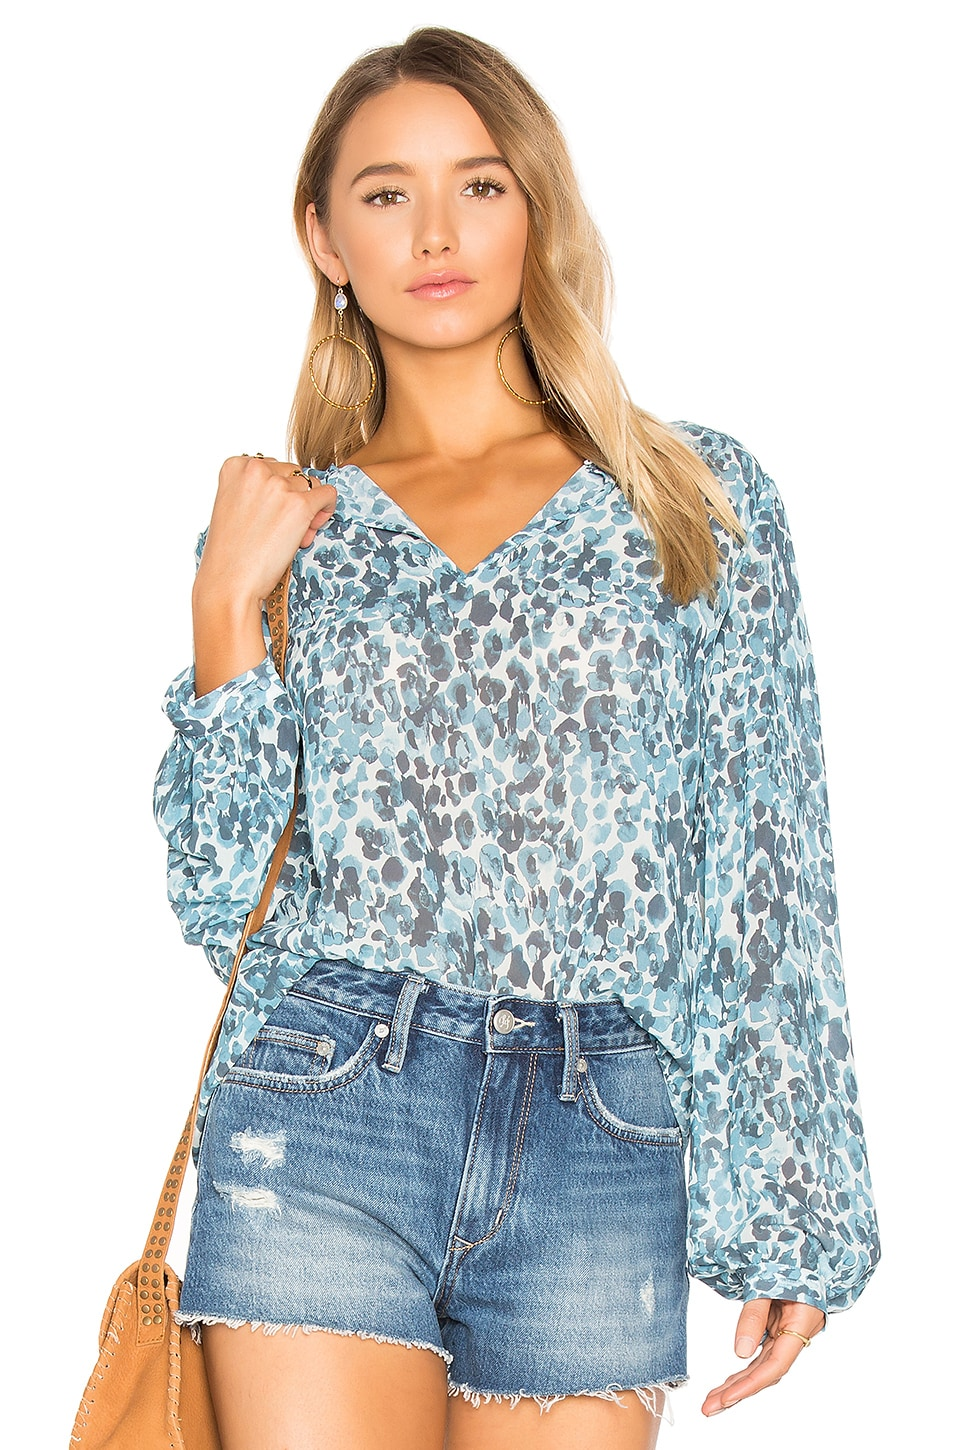 House of Harlow 1960 x REVOLVE Seymore Blouse in Watercolor